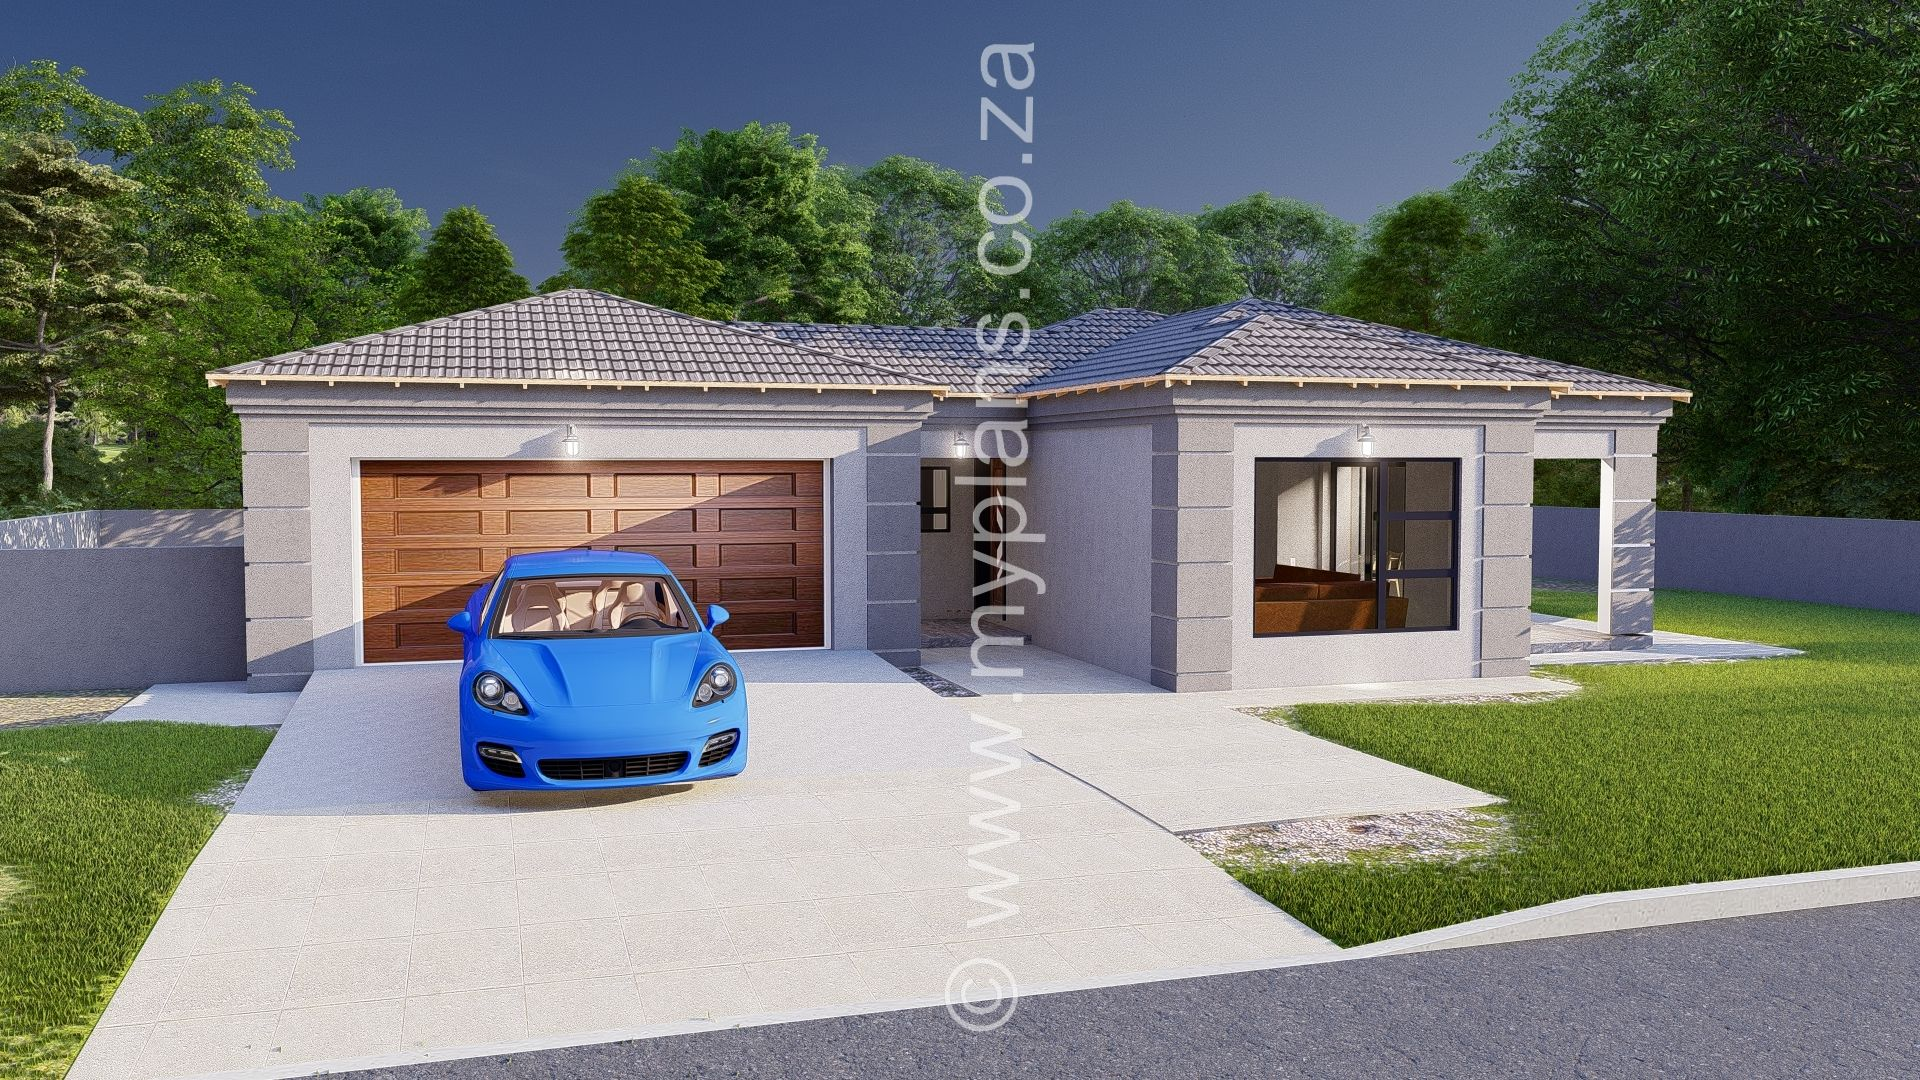 2 Bedroom House Plan Bla 107s In 2020 2 Bedroom House Plans Beautiful House Plans House Plan Gallery